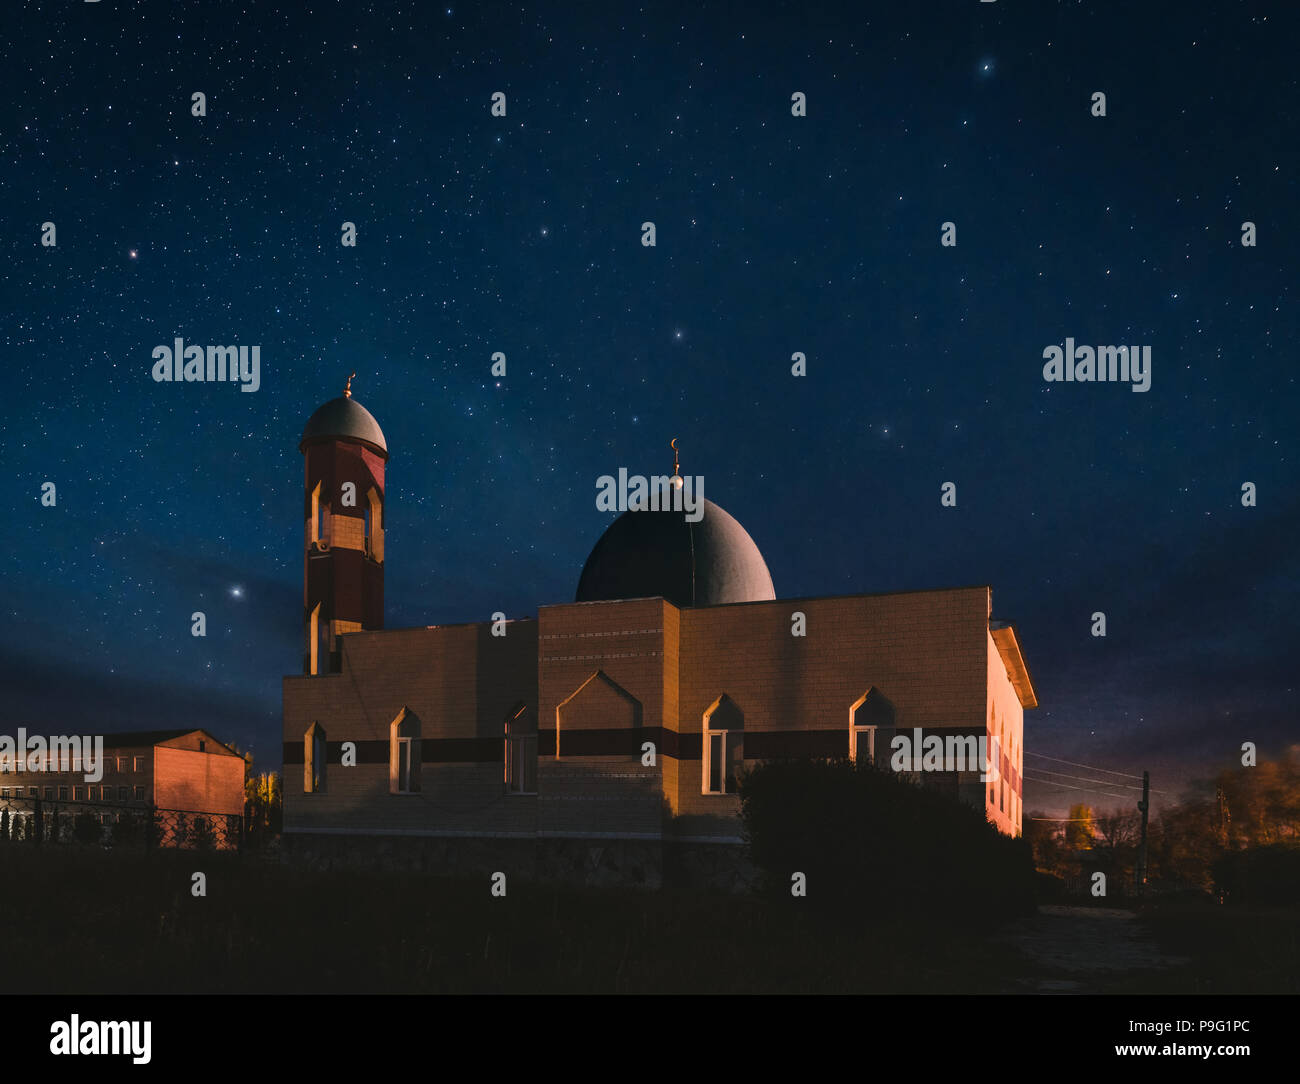 Illuminated Mosque at night time with fantastic sky and stars - Stock Image